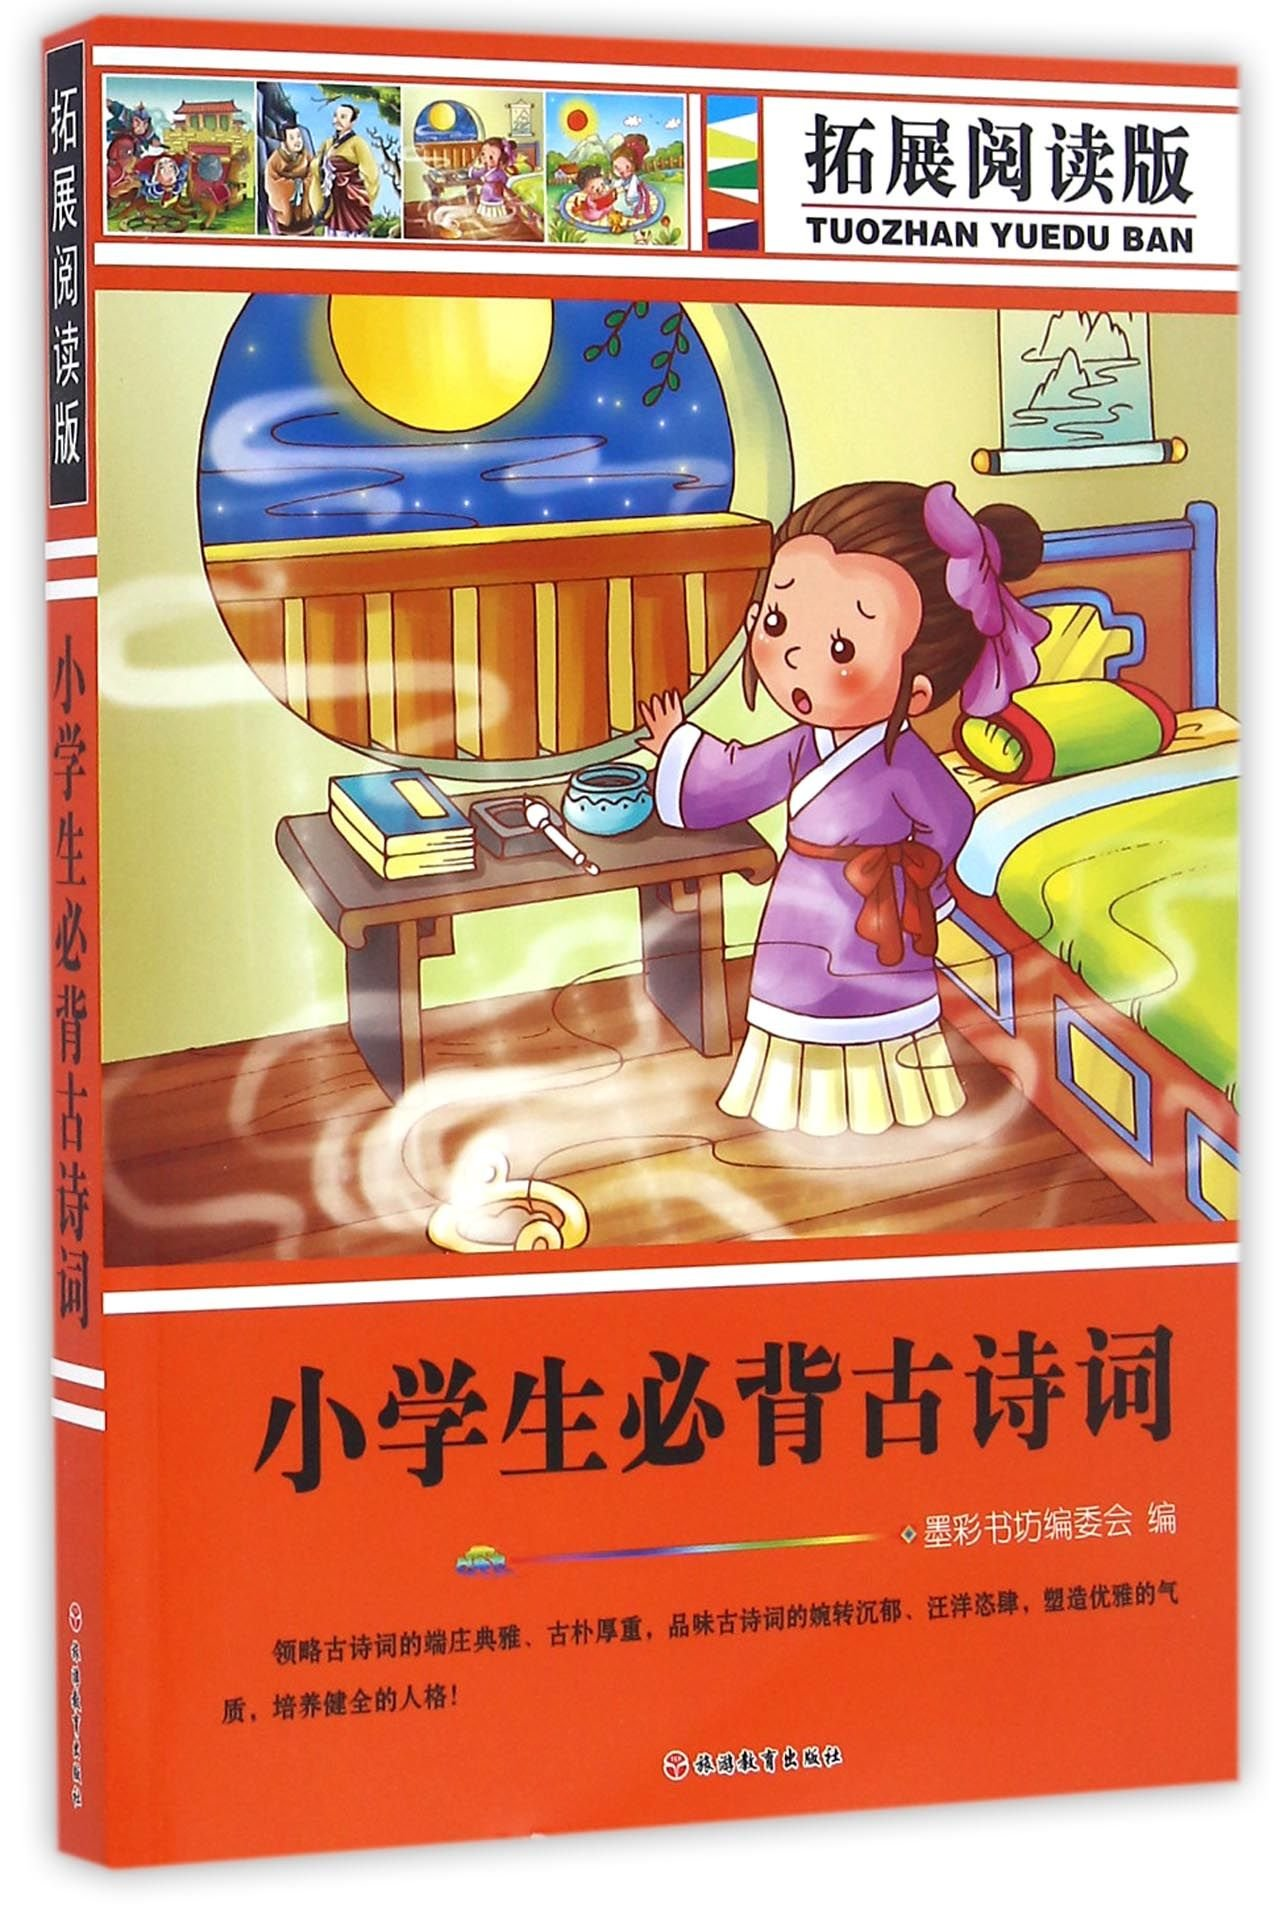 Read Online Essential Poems for Pupils (Extended Reading) (Chinese Edition) PDF